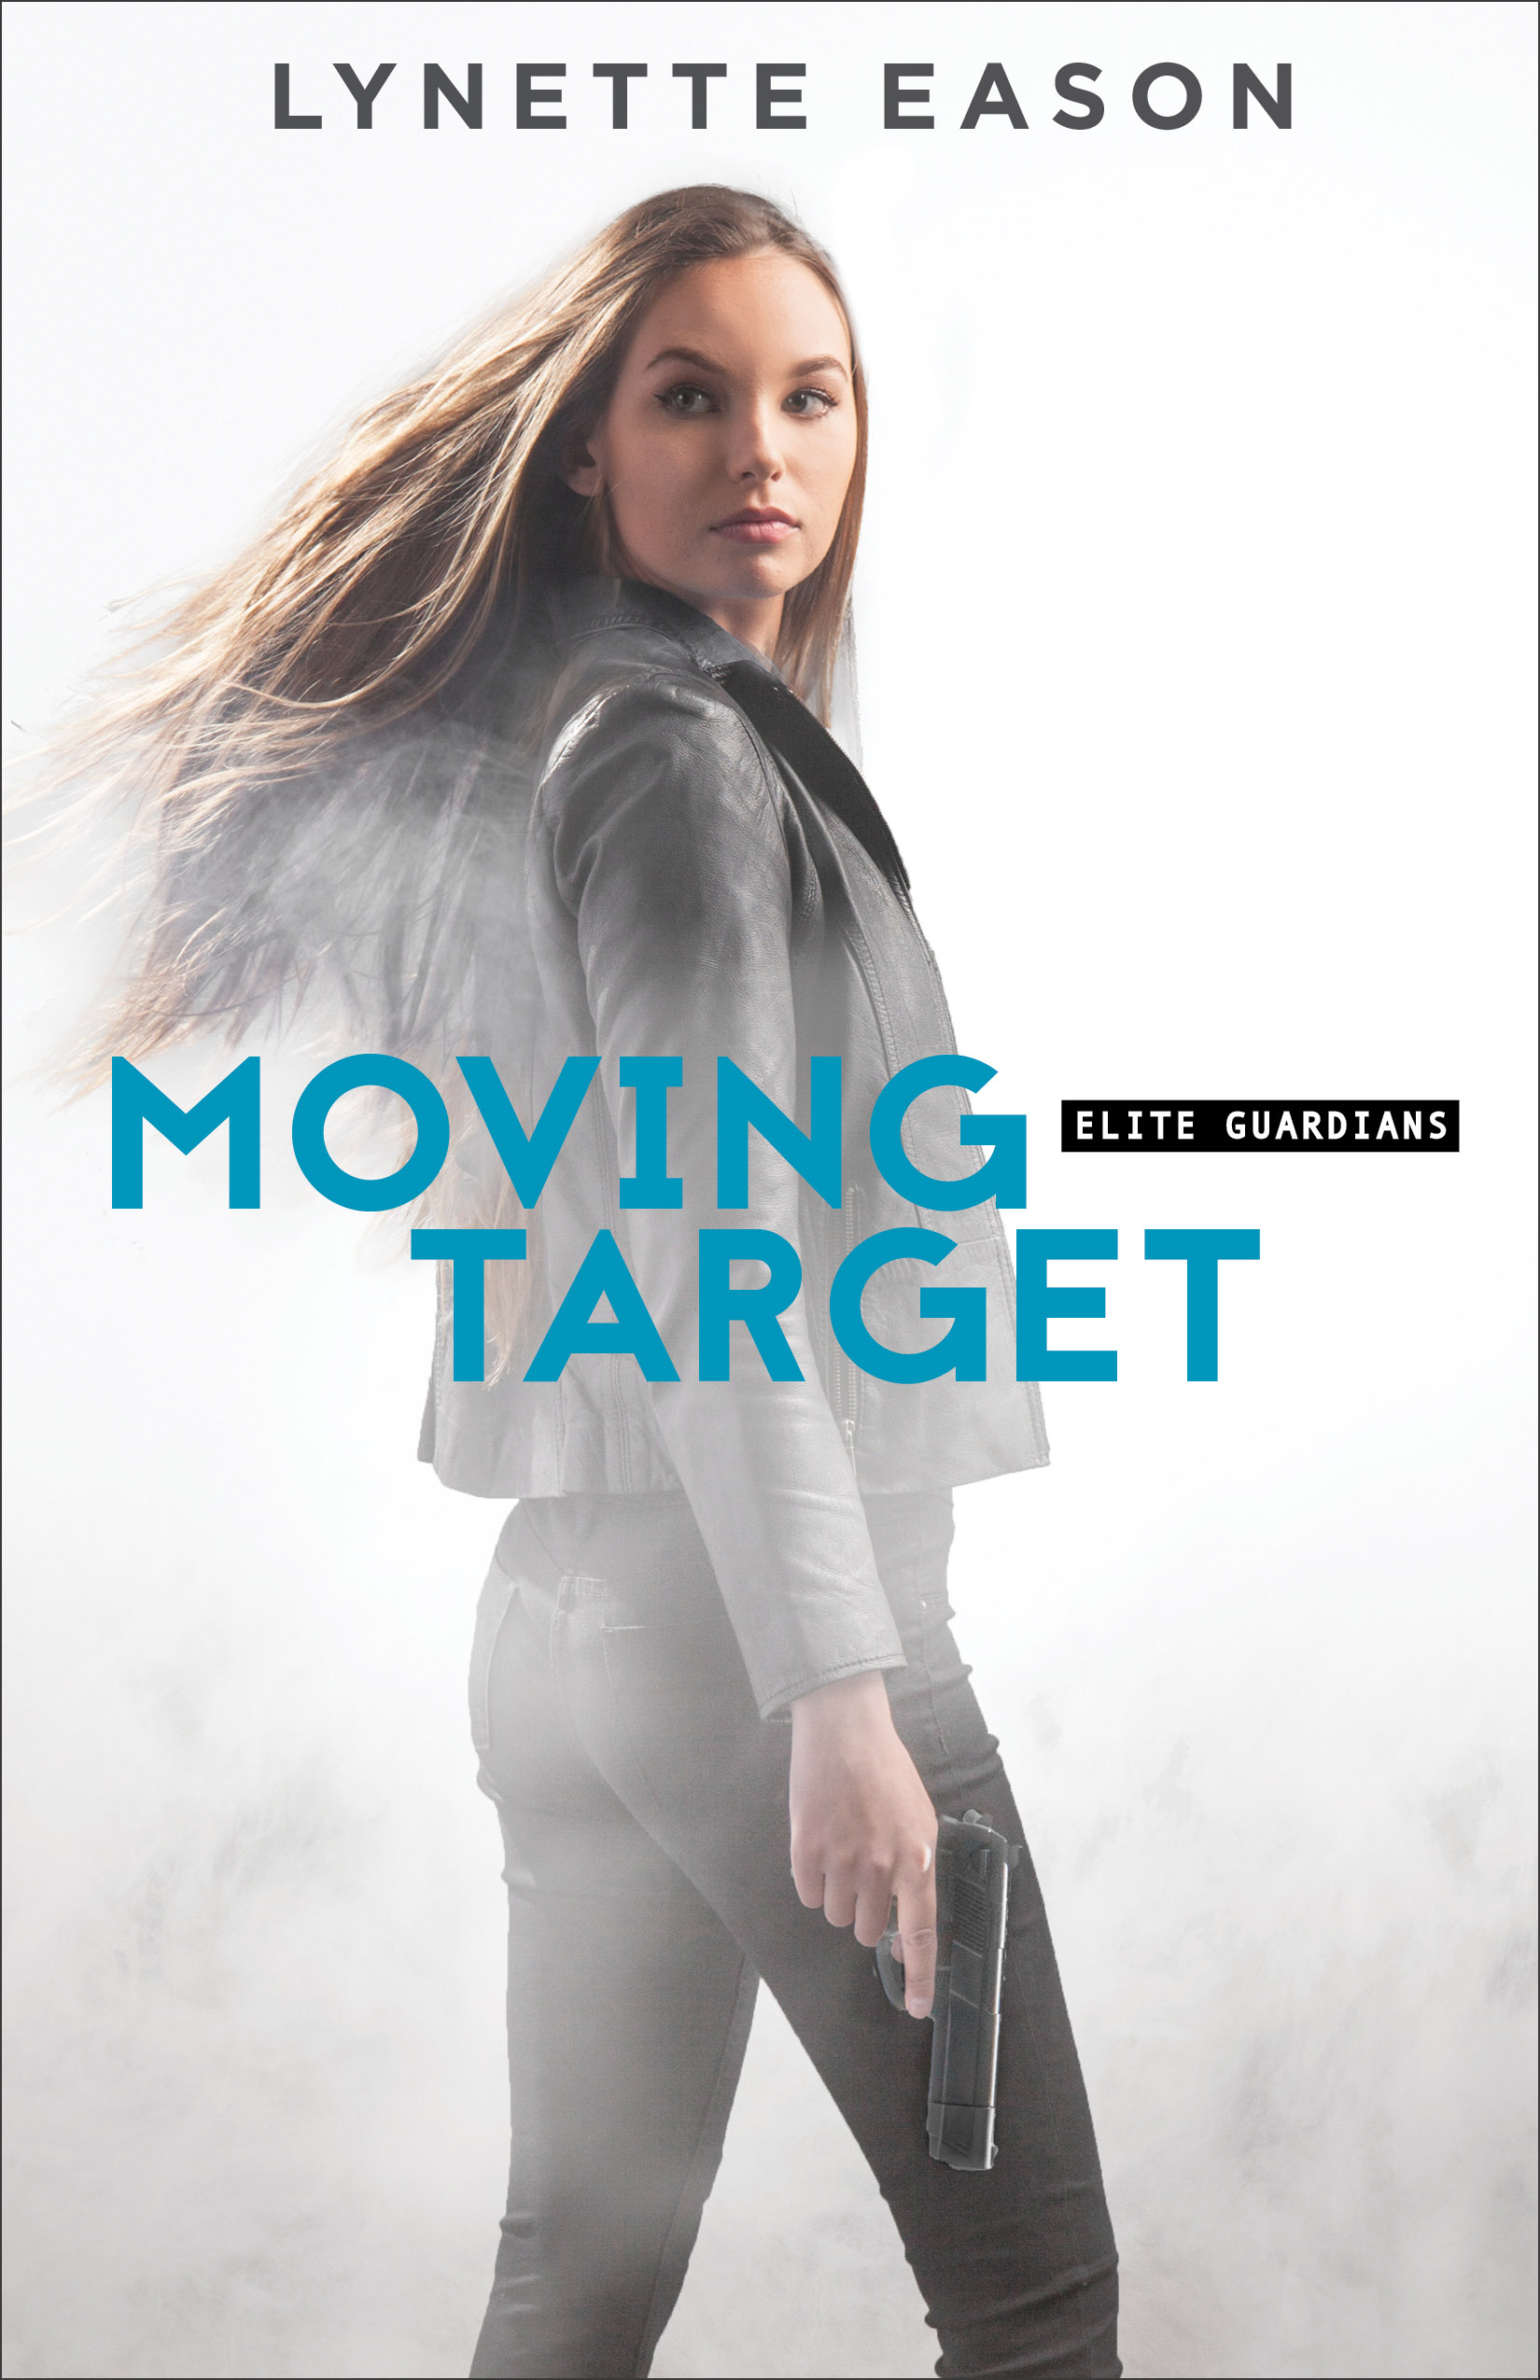 Book review of Moving Target by Lynette Eason (Revell) by papertapepins